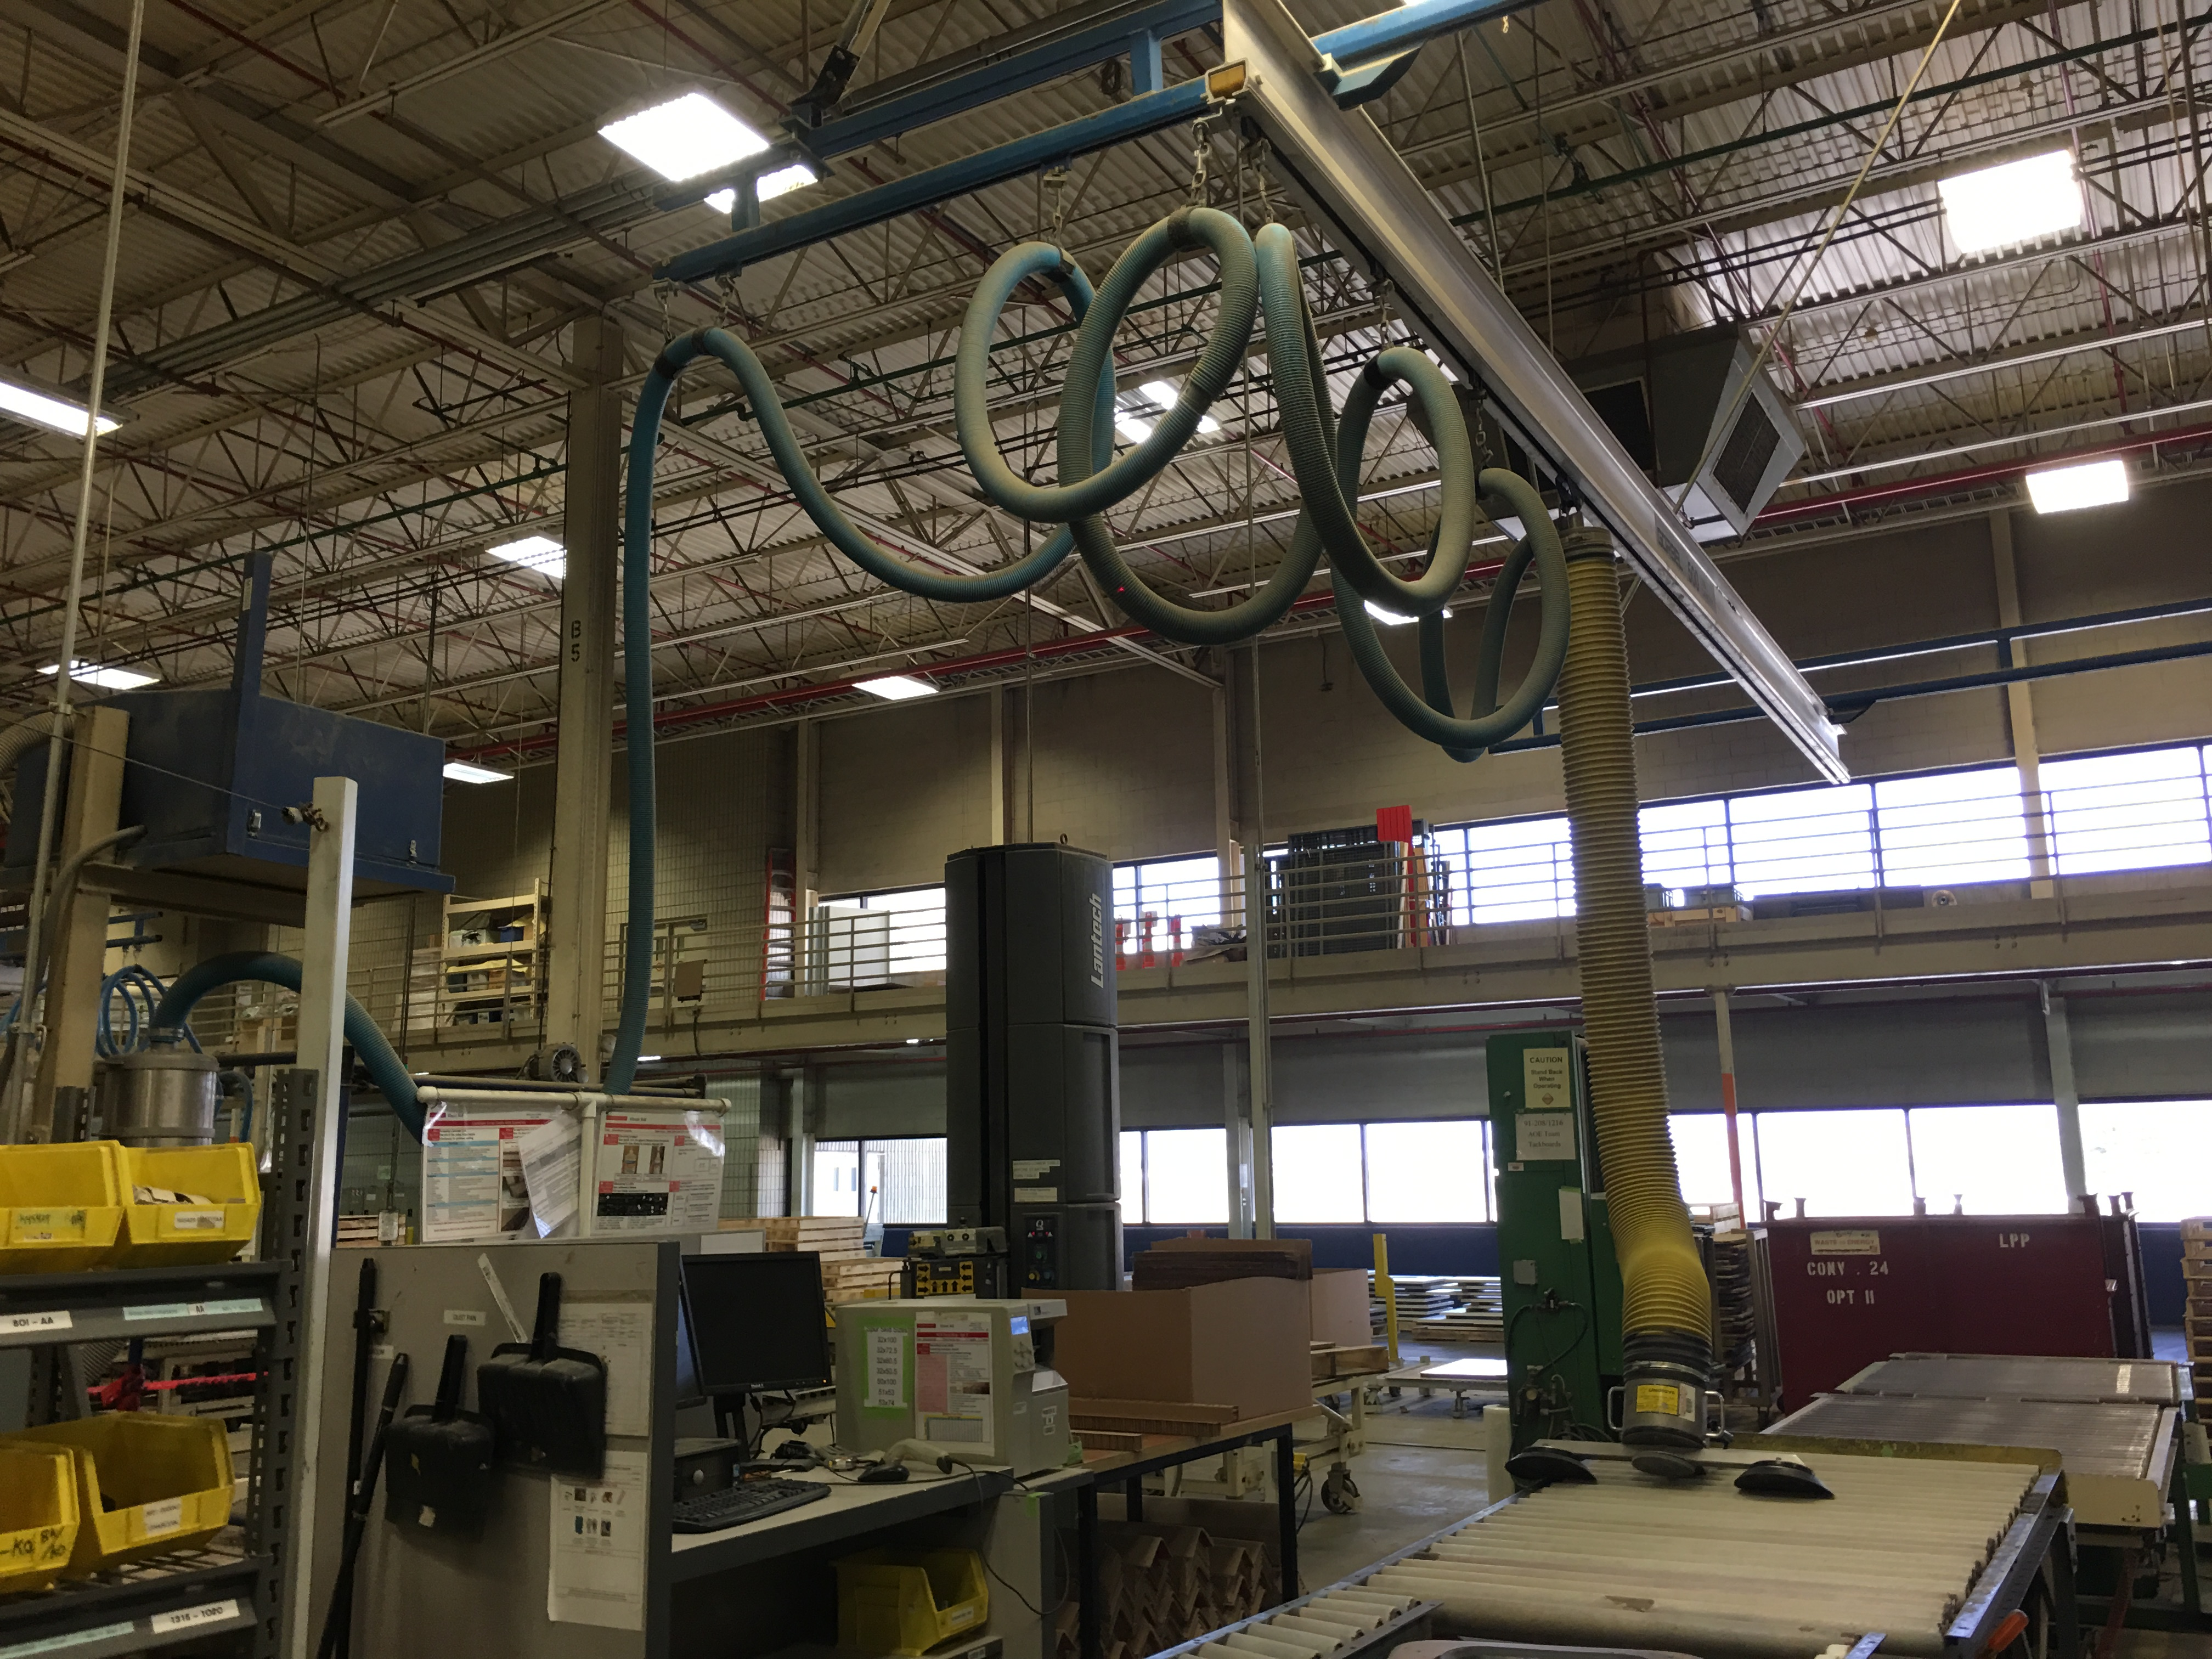 VACUUM LIFTER WITH PUMP AND OVERHEAD GANTRY RAILS